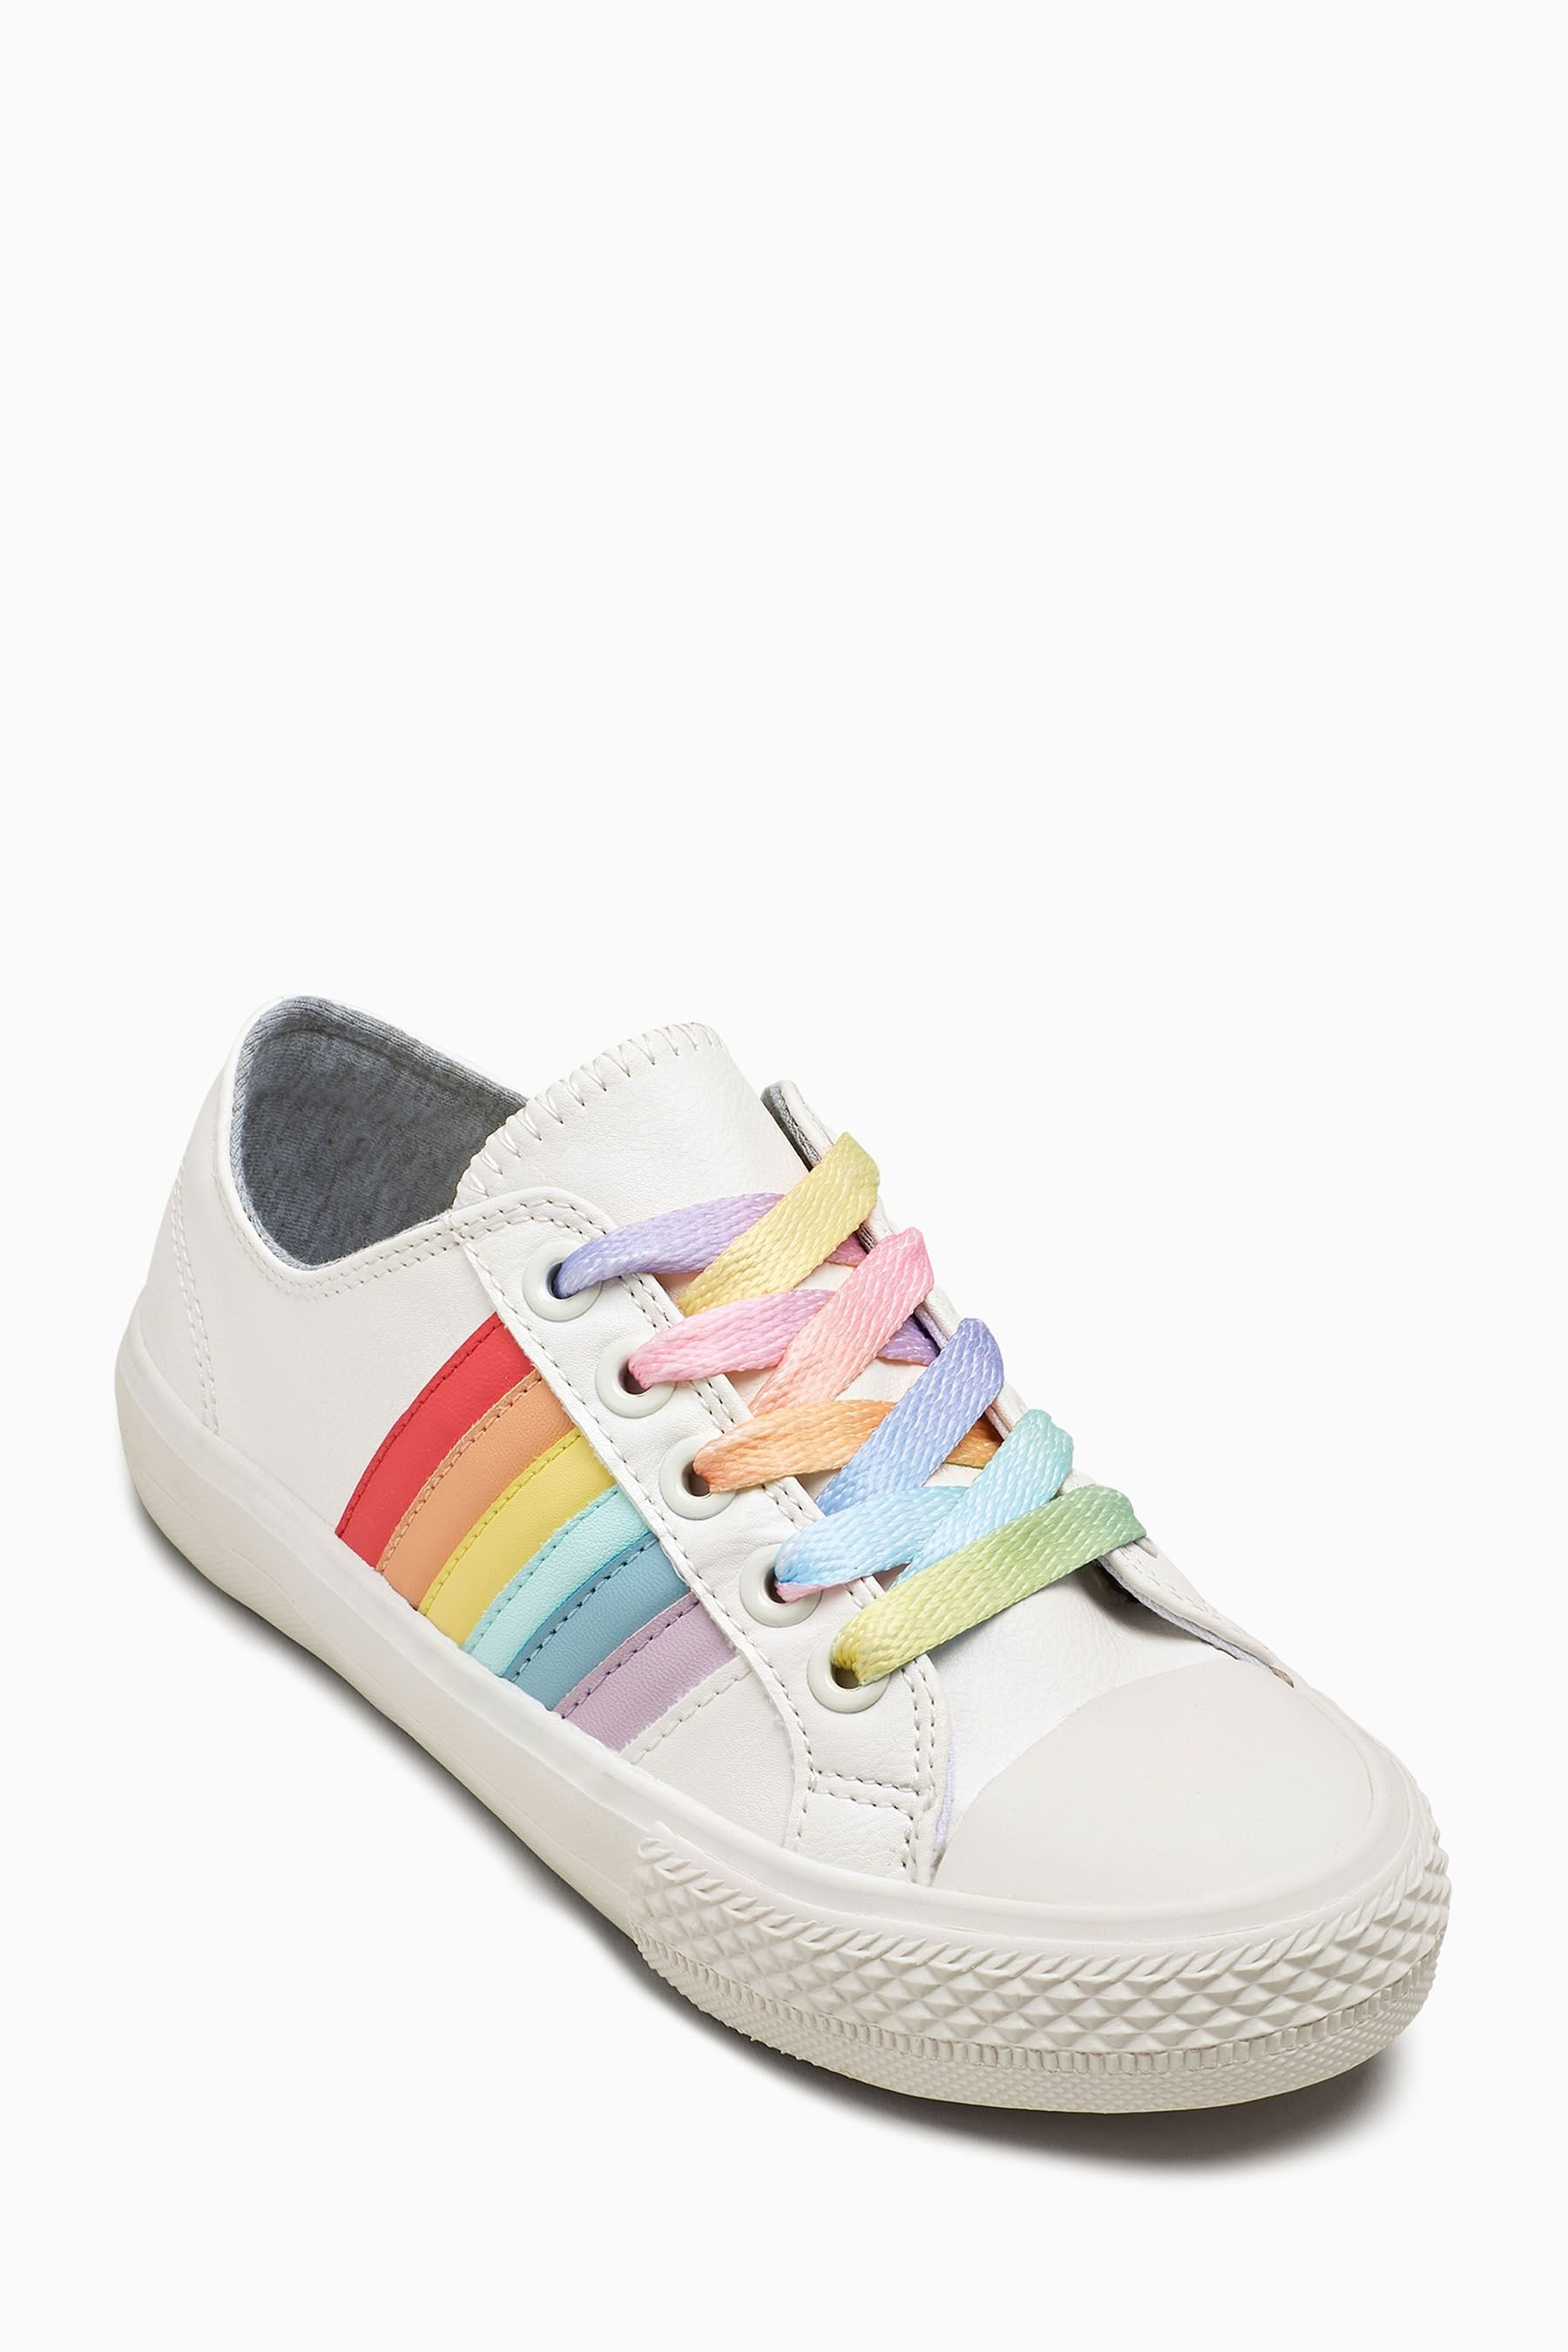 191ec4dd0 Buy White Rainbow Lace-Up Trainers (Older Girls) from the Next UK online